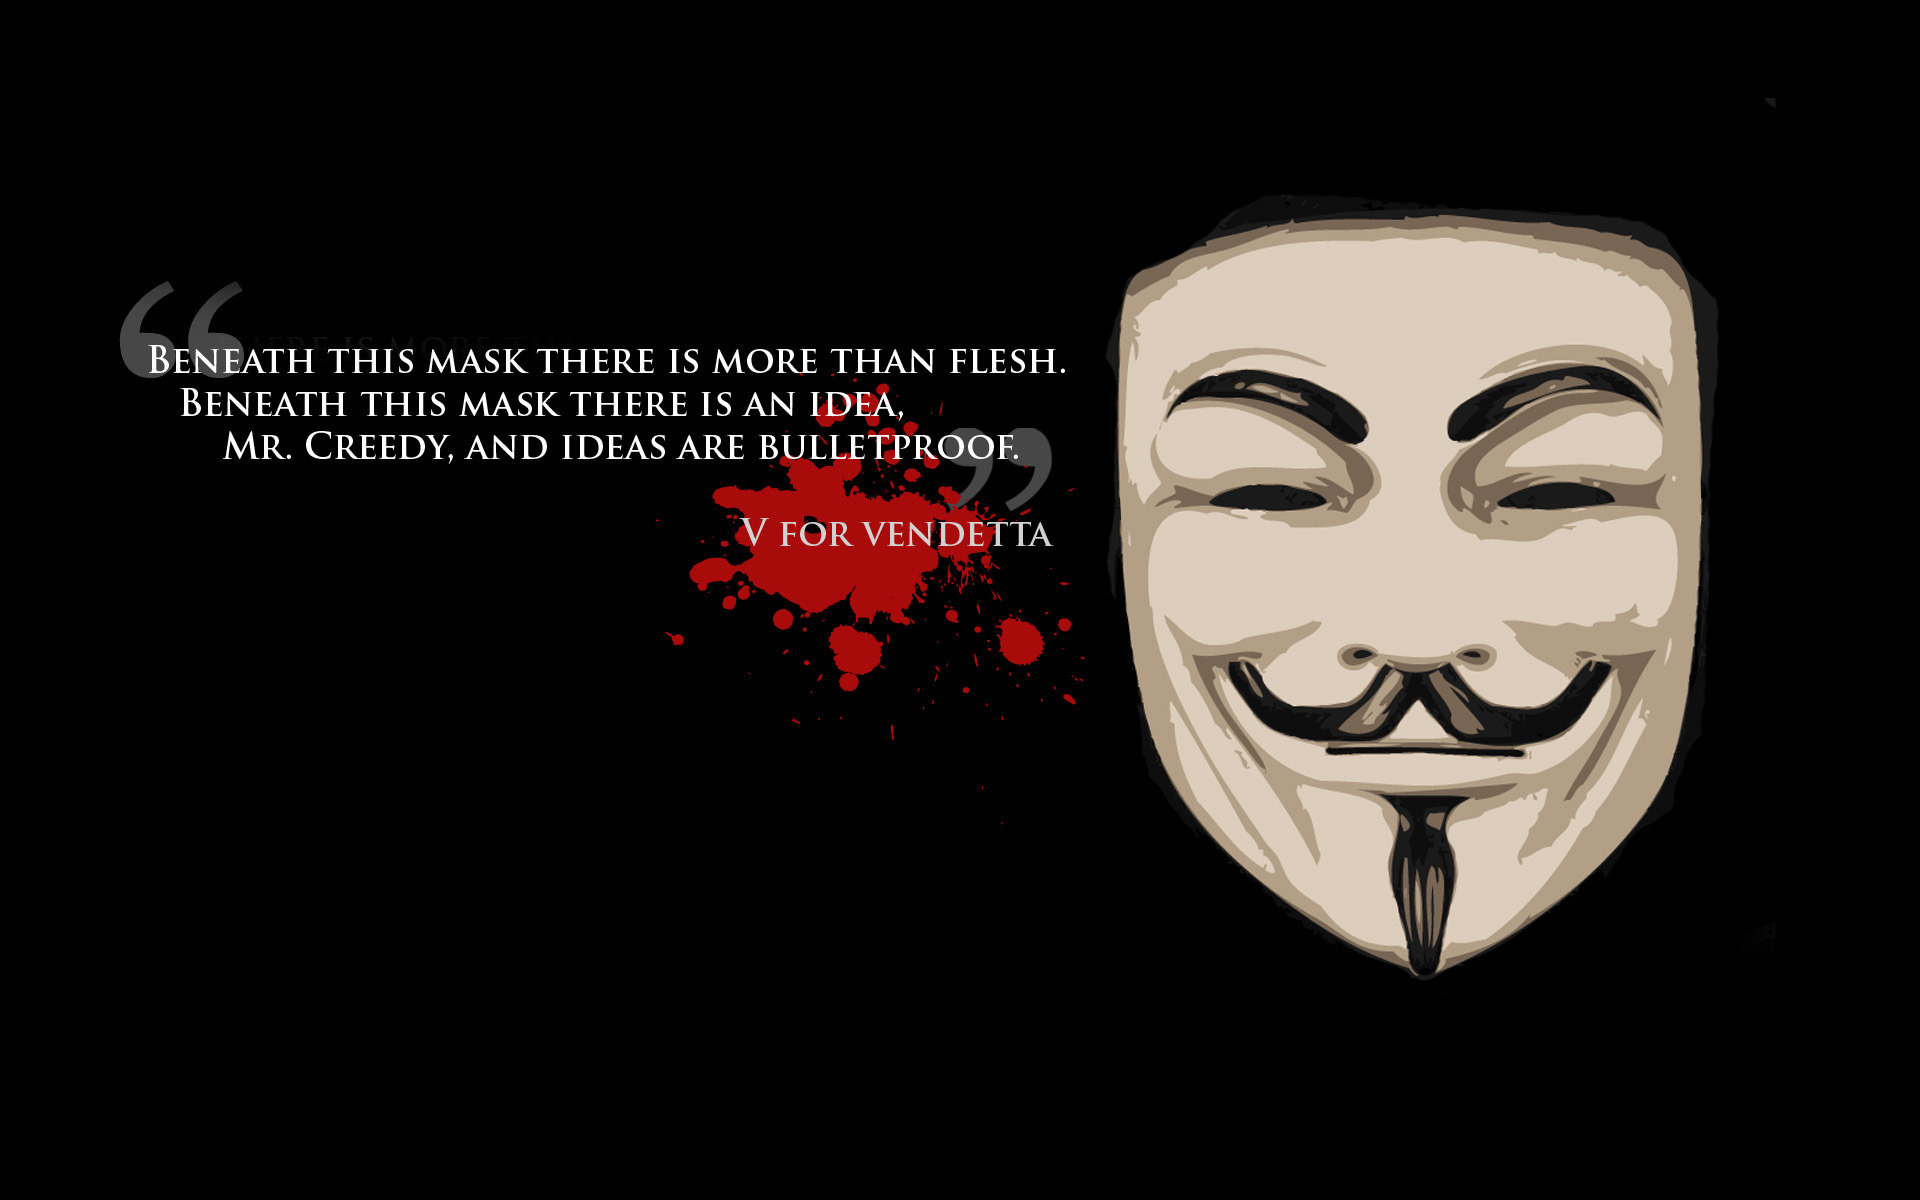 guy-fawkes-mask-black-white-freedom-photos-pictures-200117